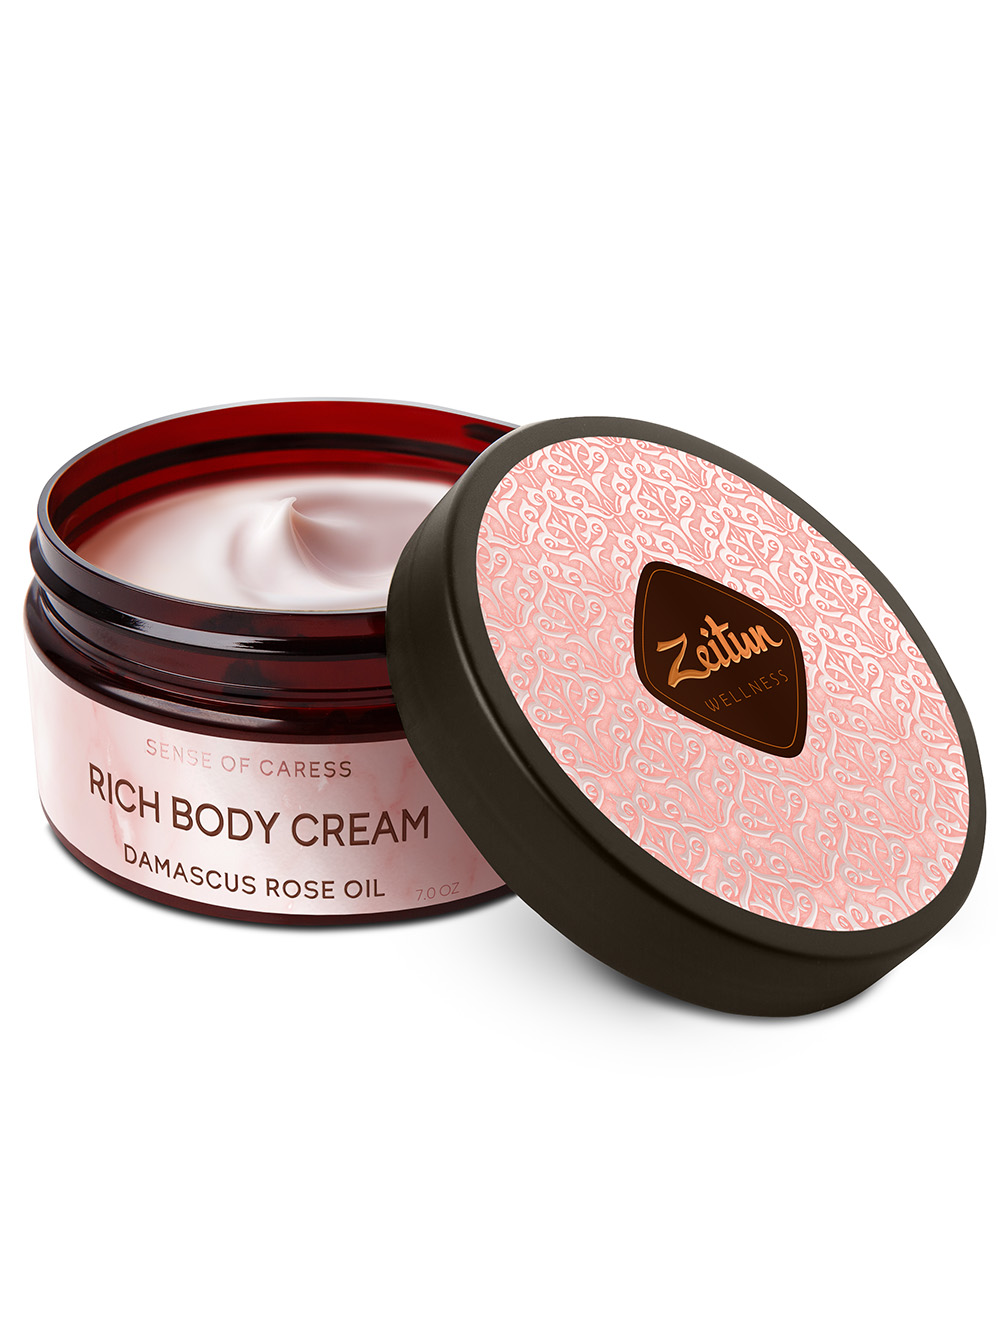 Sense of Caress Rich Soothing Body Cream with Damascus Rose oil